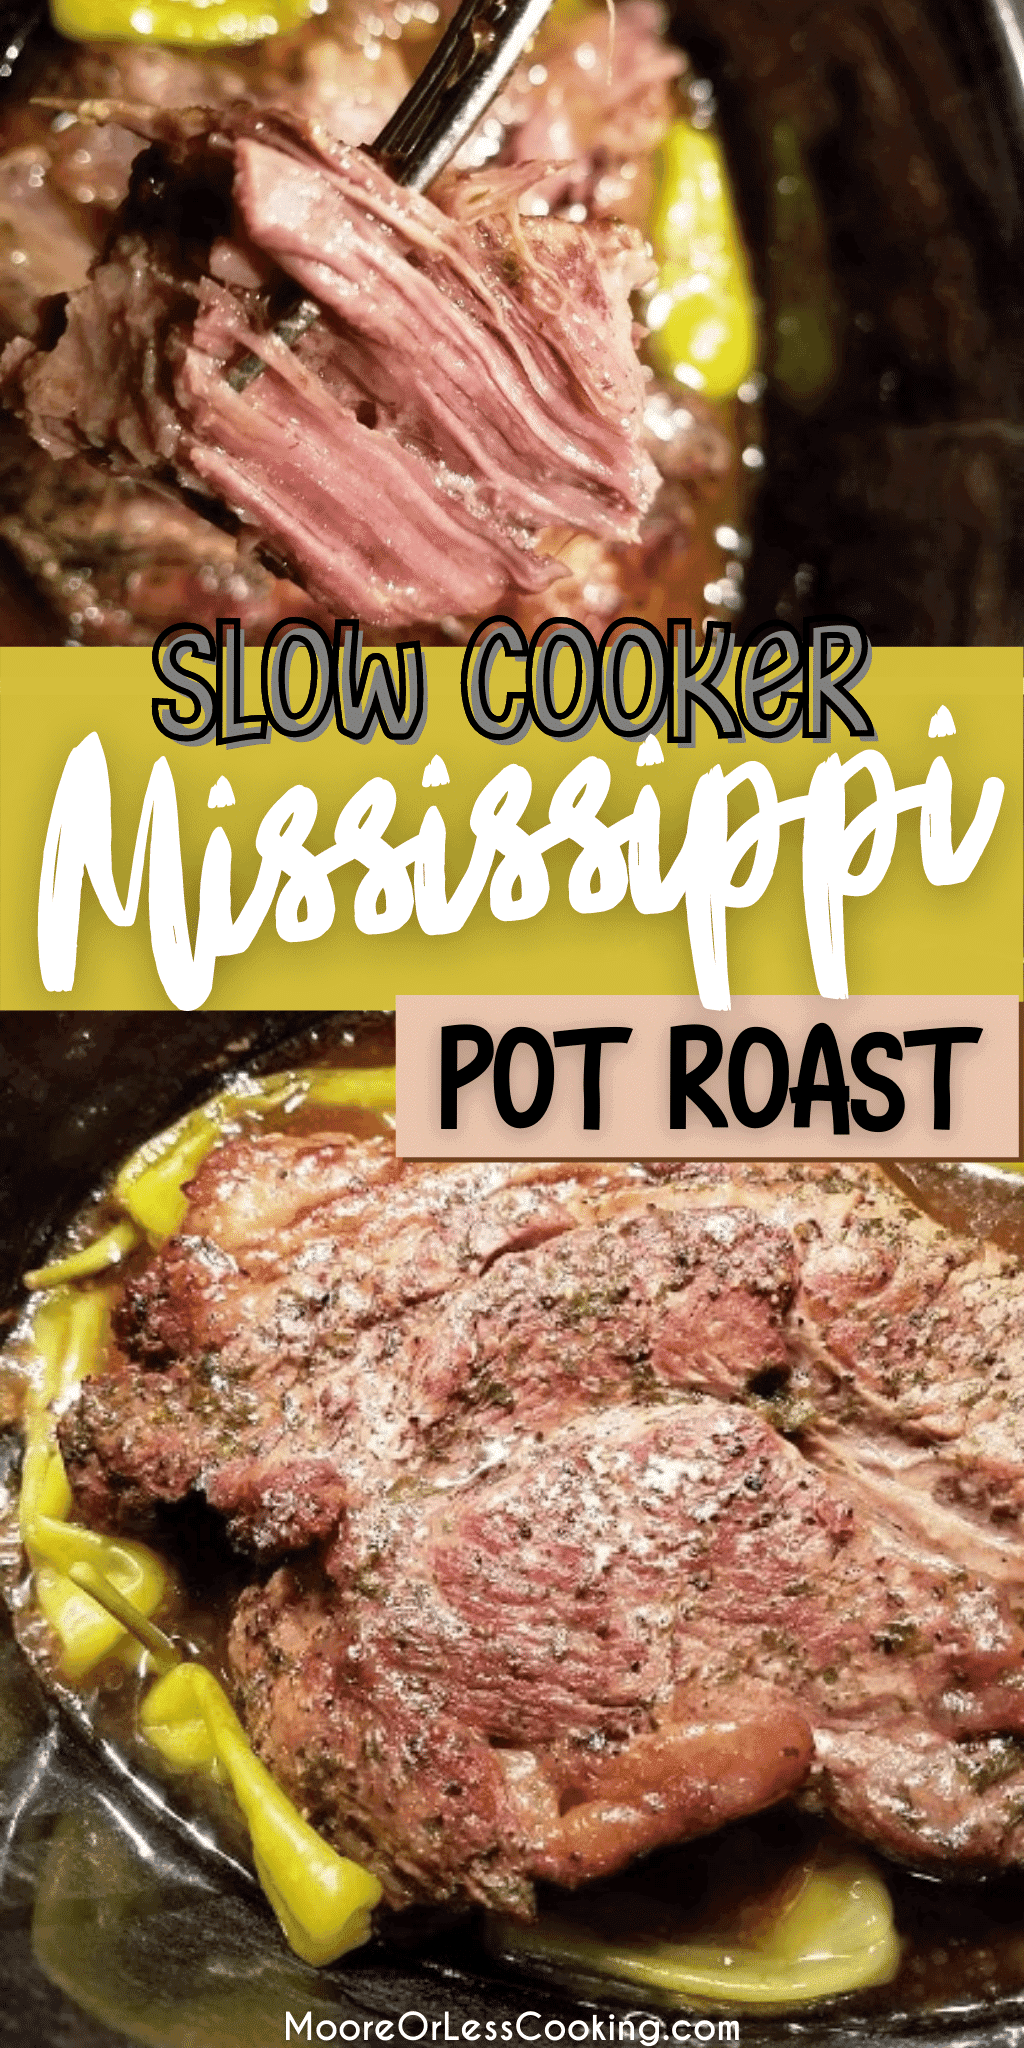 The easiest, most delicious Beef Pot Roast that you make in your slow cooker! Only 7 ingredients are needed to make this incredible roast! #beefpotroast #slowcooker #crockpot #mooreorlesscooking via @Mooreorlesscook